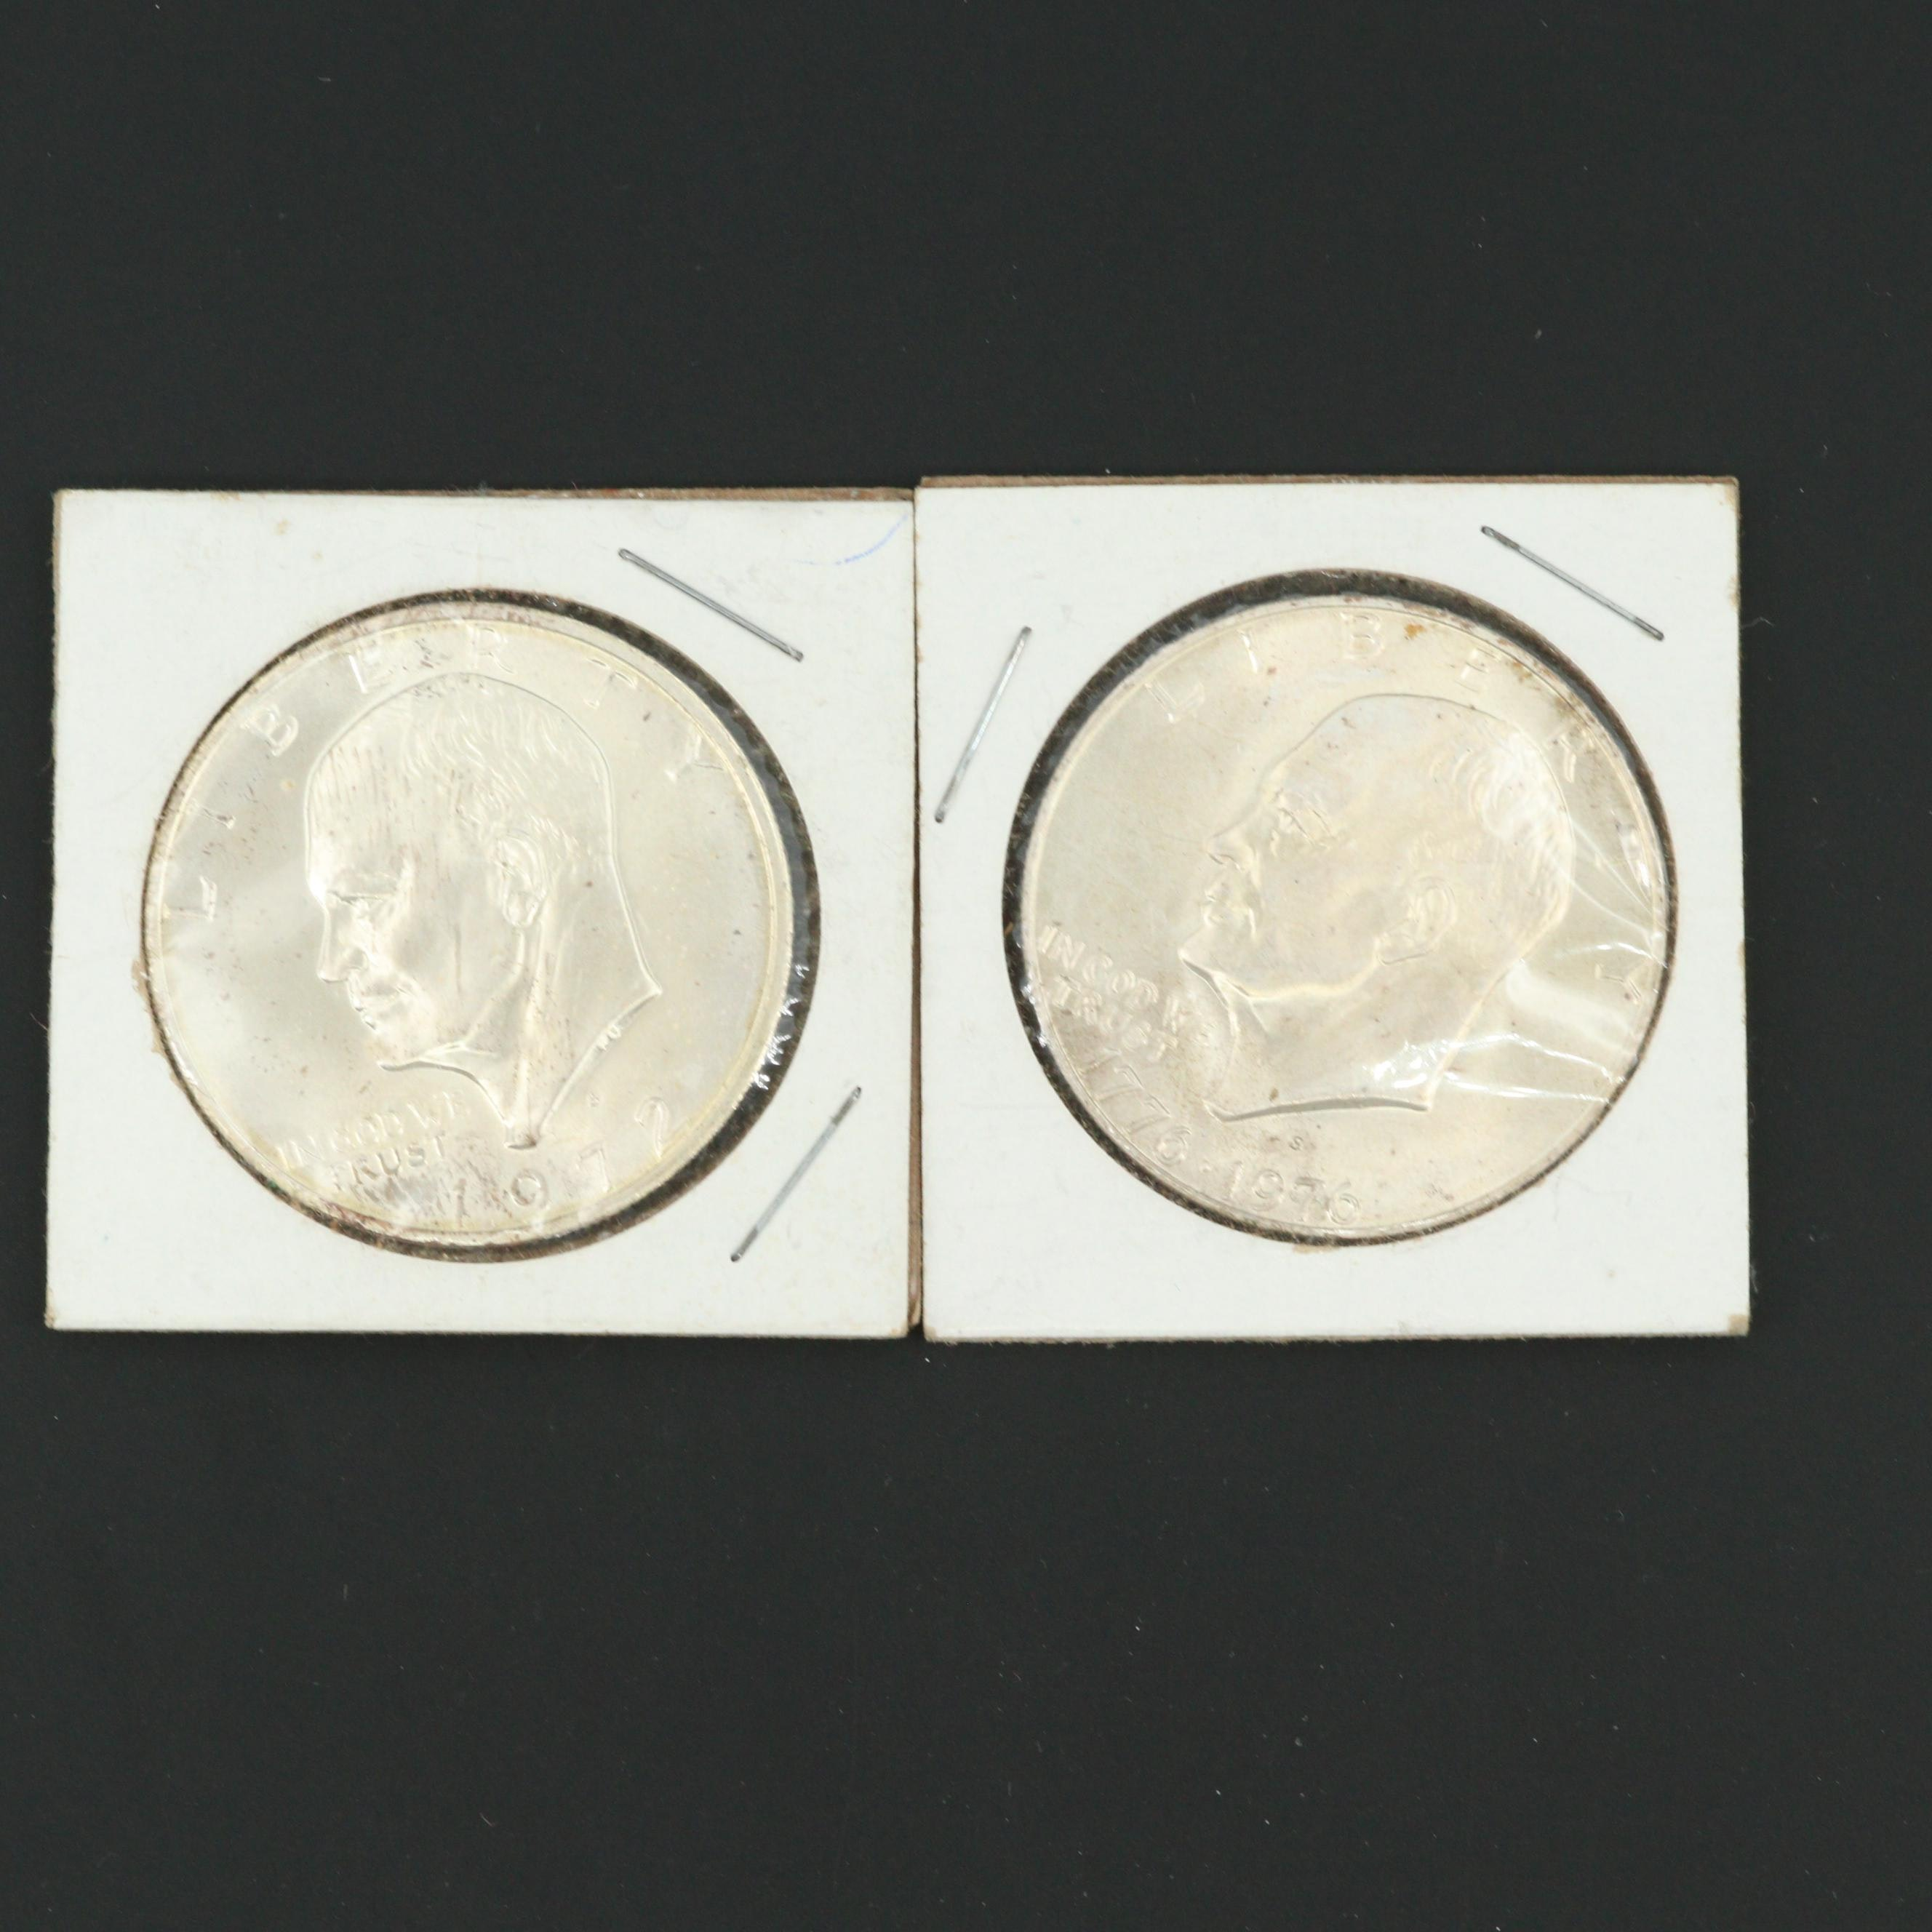 Two Silver Clad Eisenhower Dollars